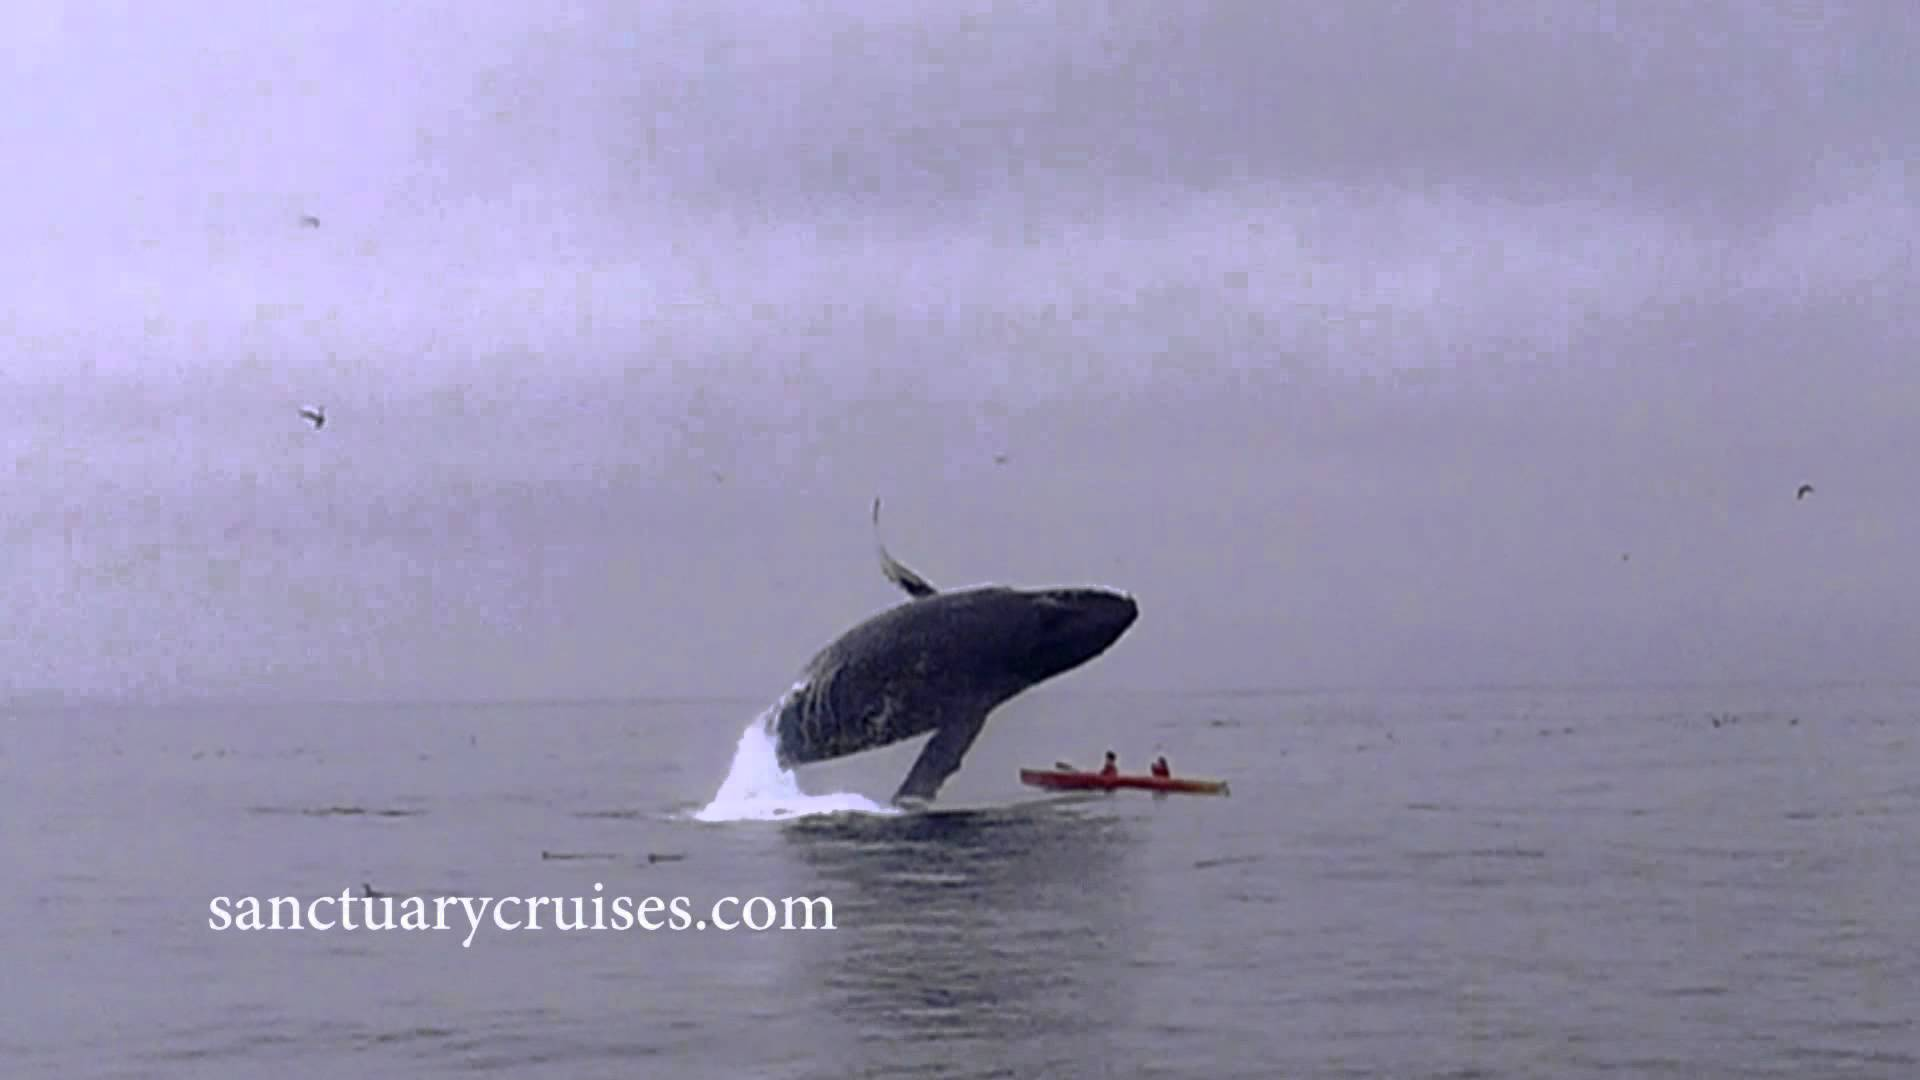 Kayakers are almost crushed by a Humpback Whale